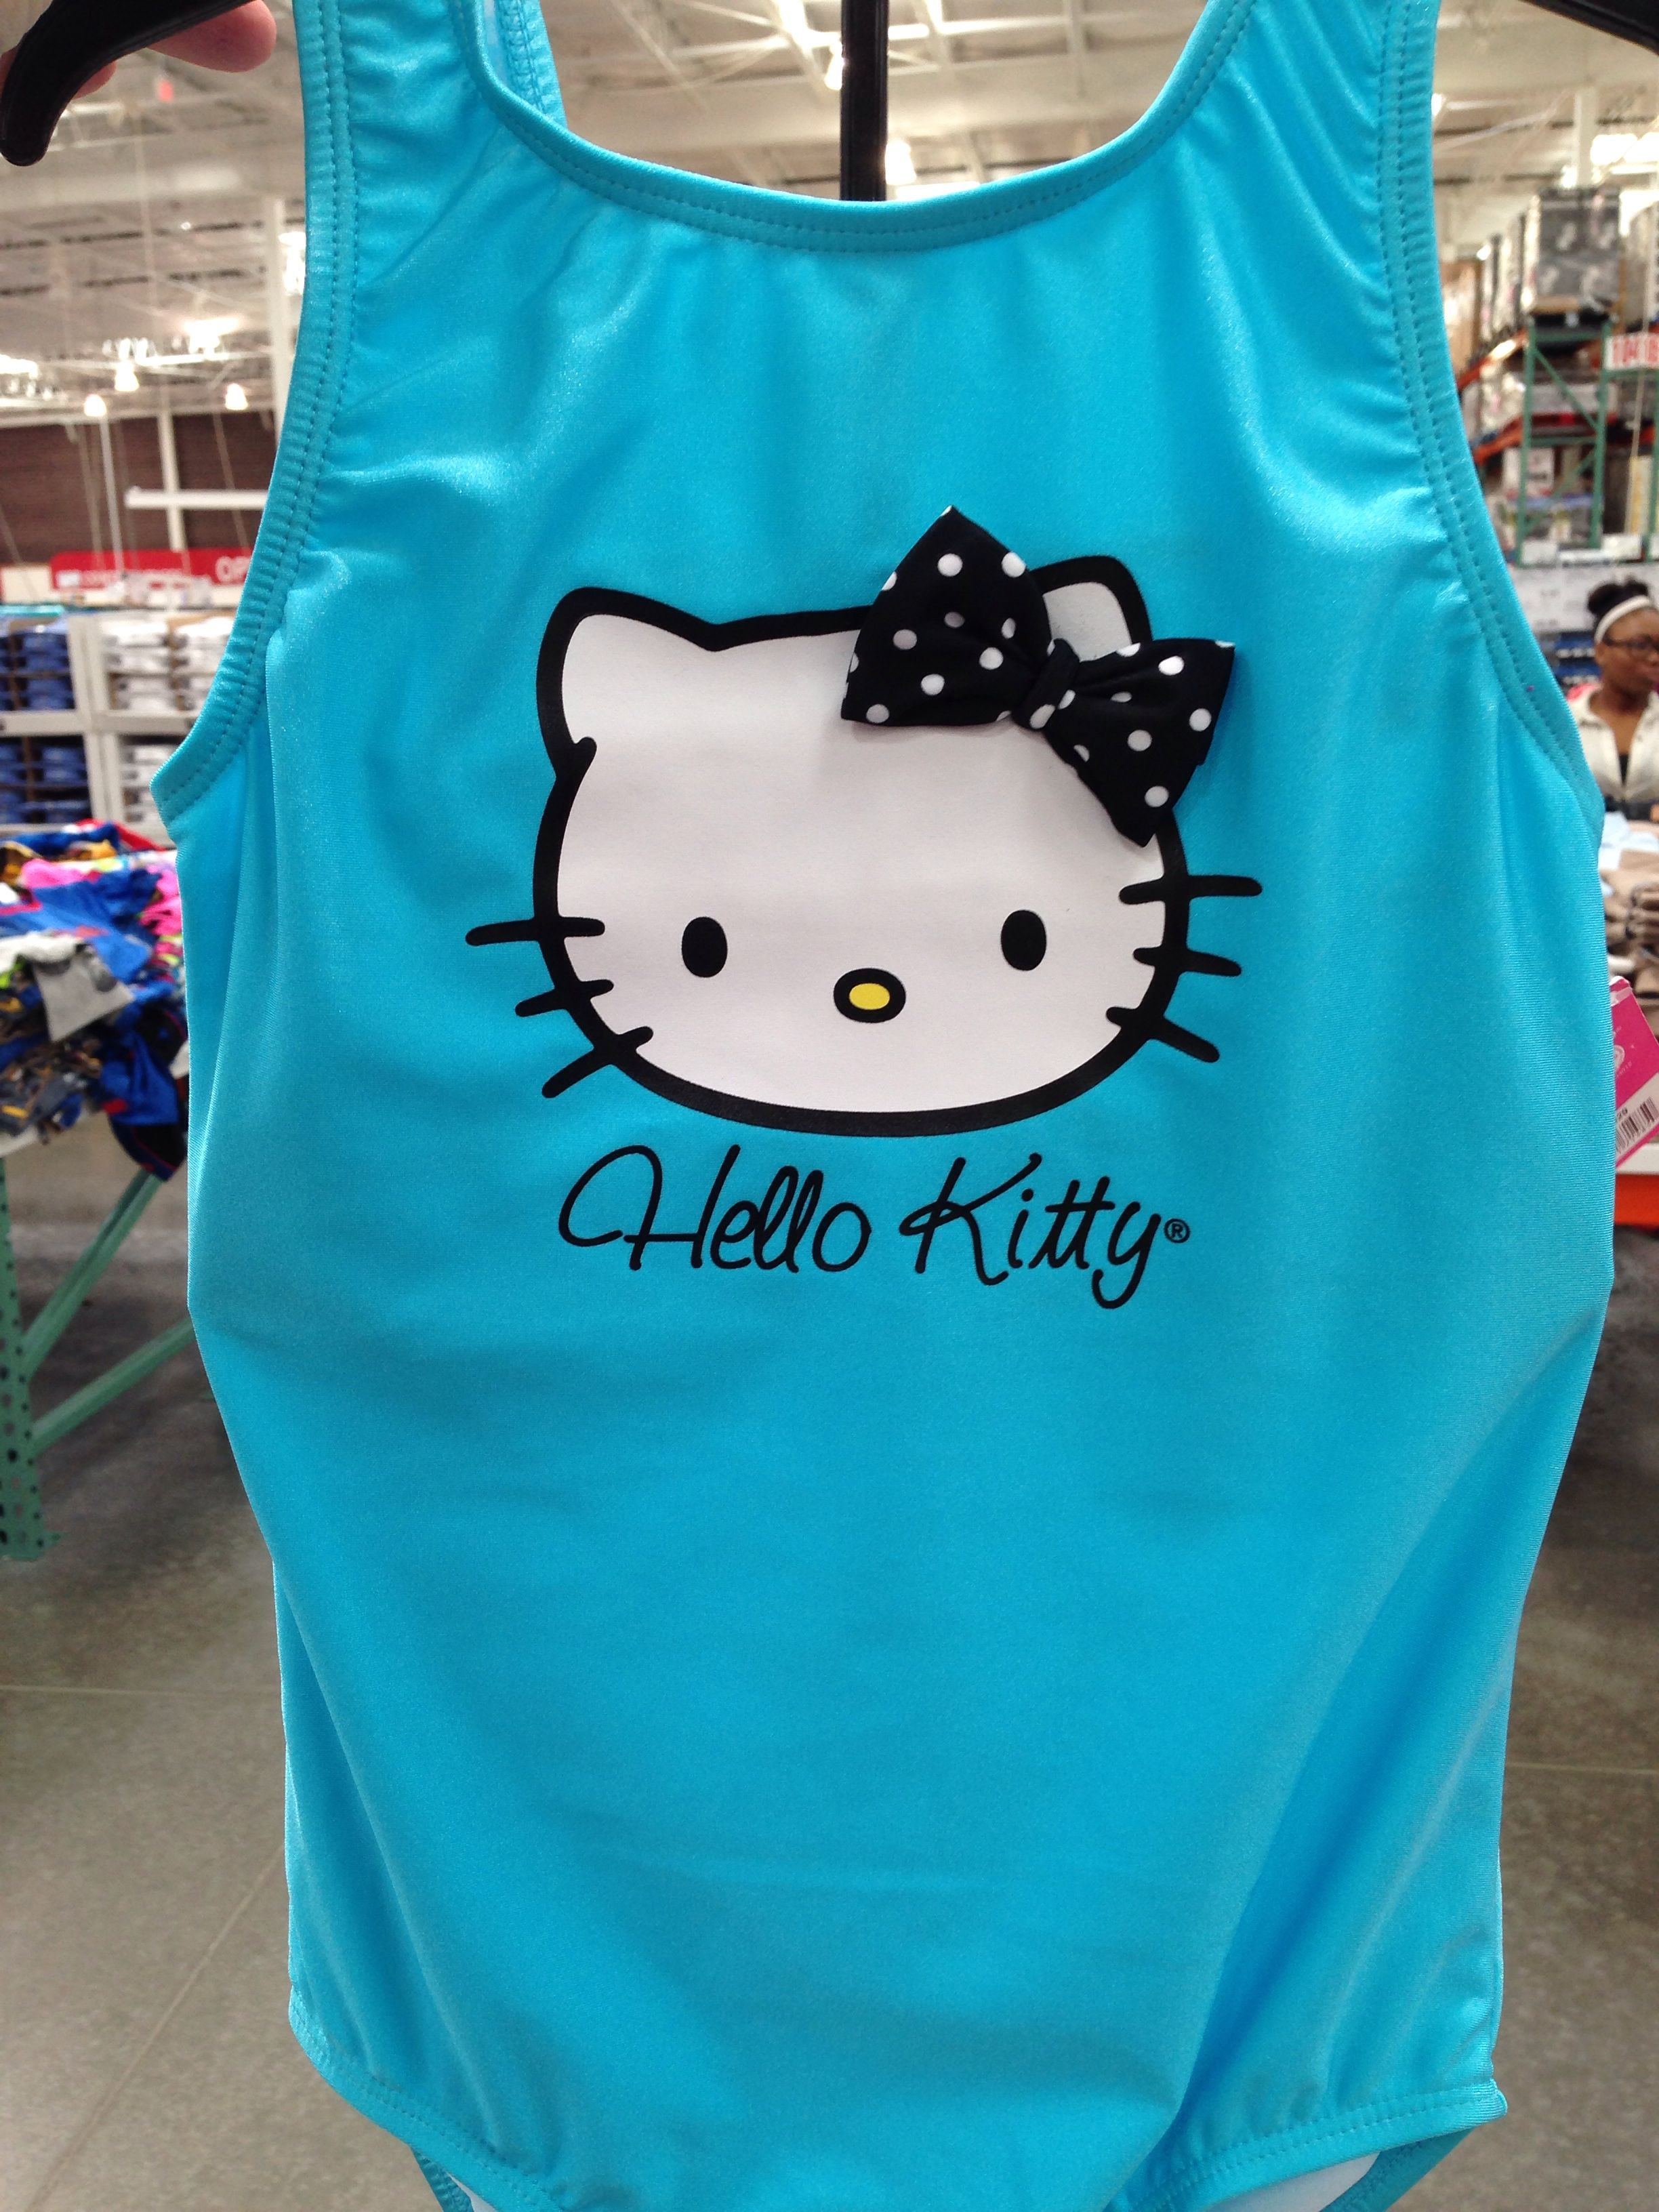 a7c0a4a8cd3b3 Hello Kitty swimsuit at Costco! | Kitty Kitty | Hello kitty, Kitty ...